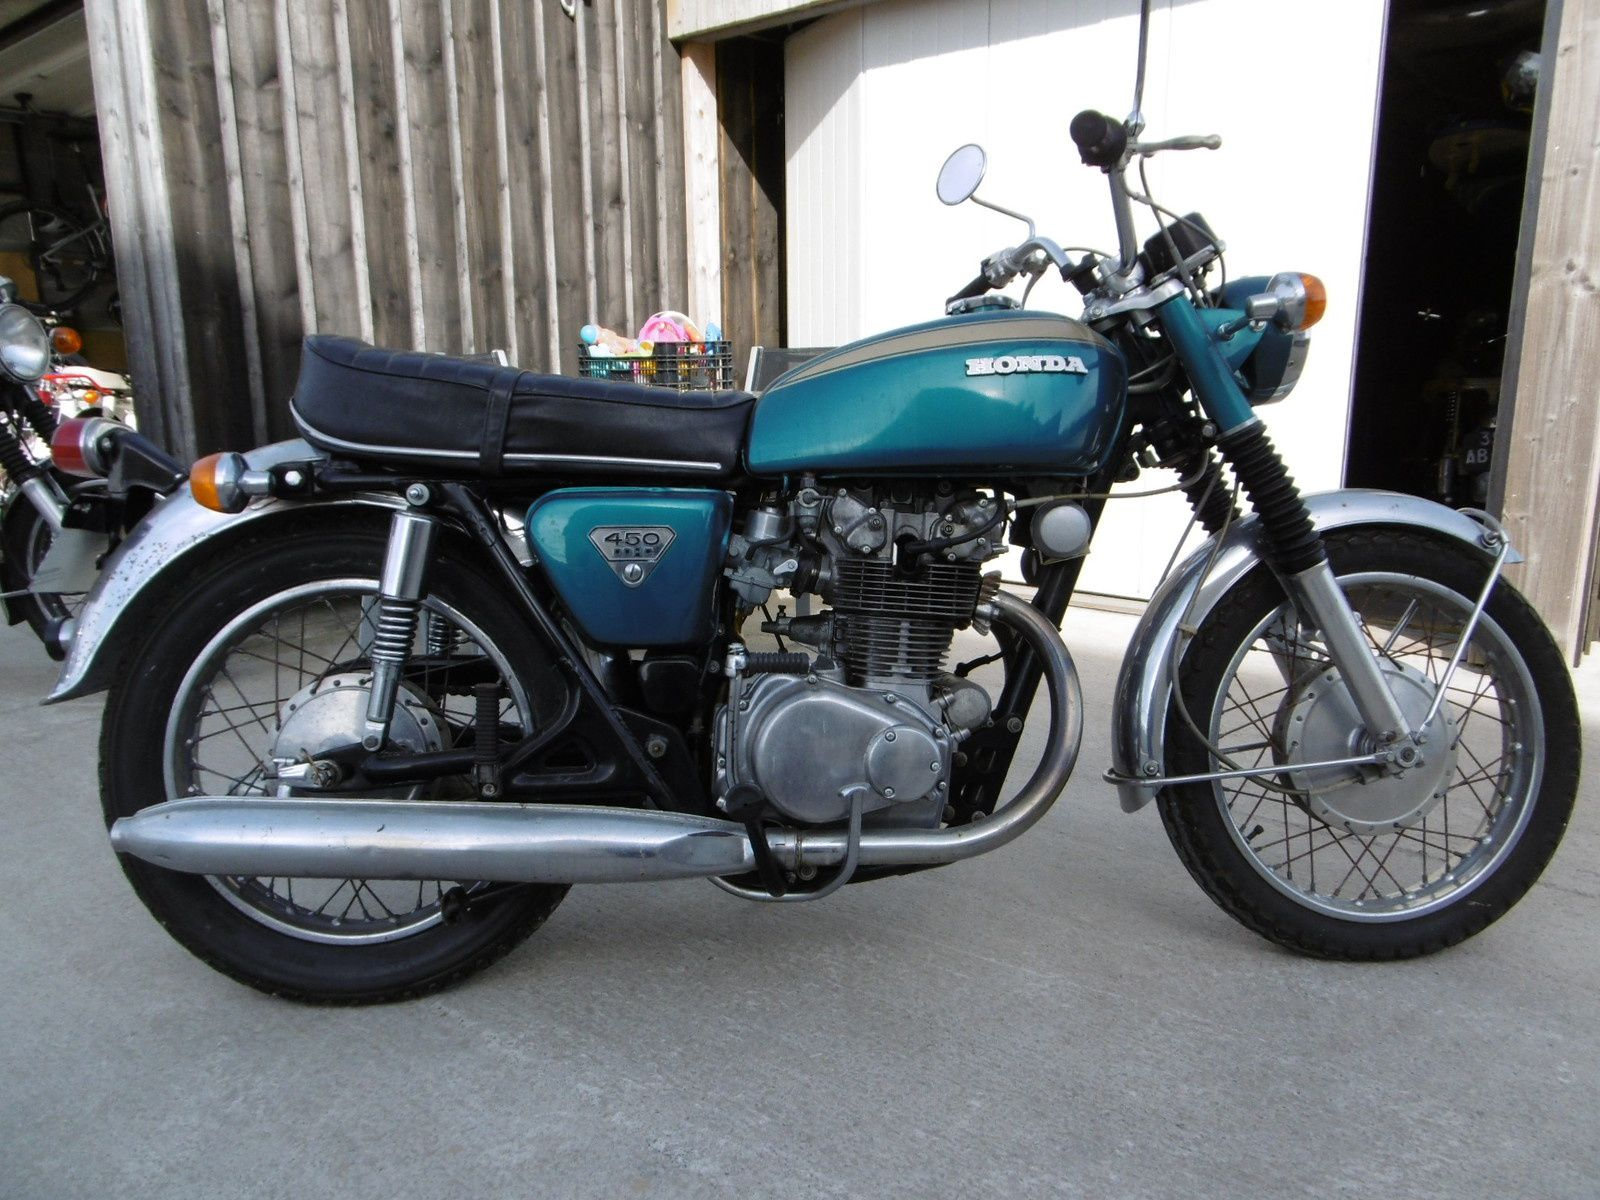 honda cb 450 k1 de 1971 breizh moto ancienne. Black Bedroom Furniture Sets. Home Design Ideas